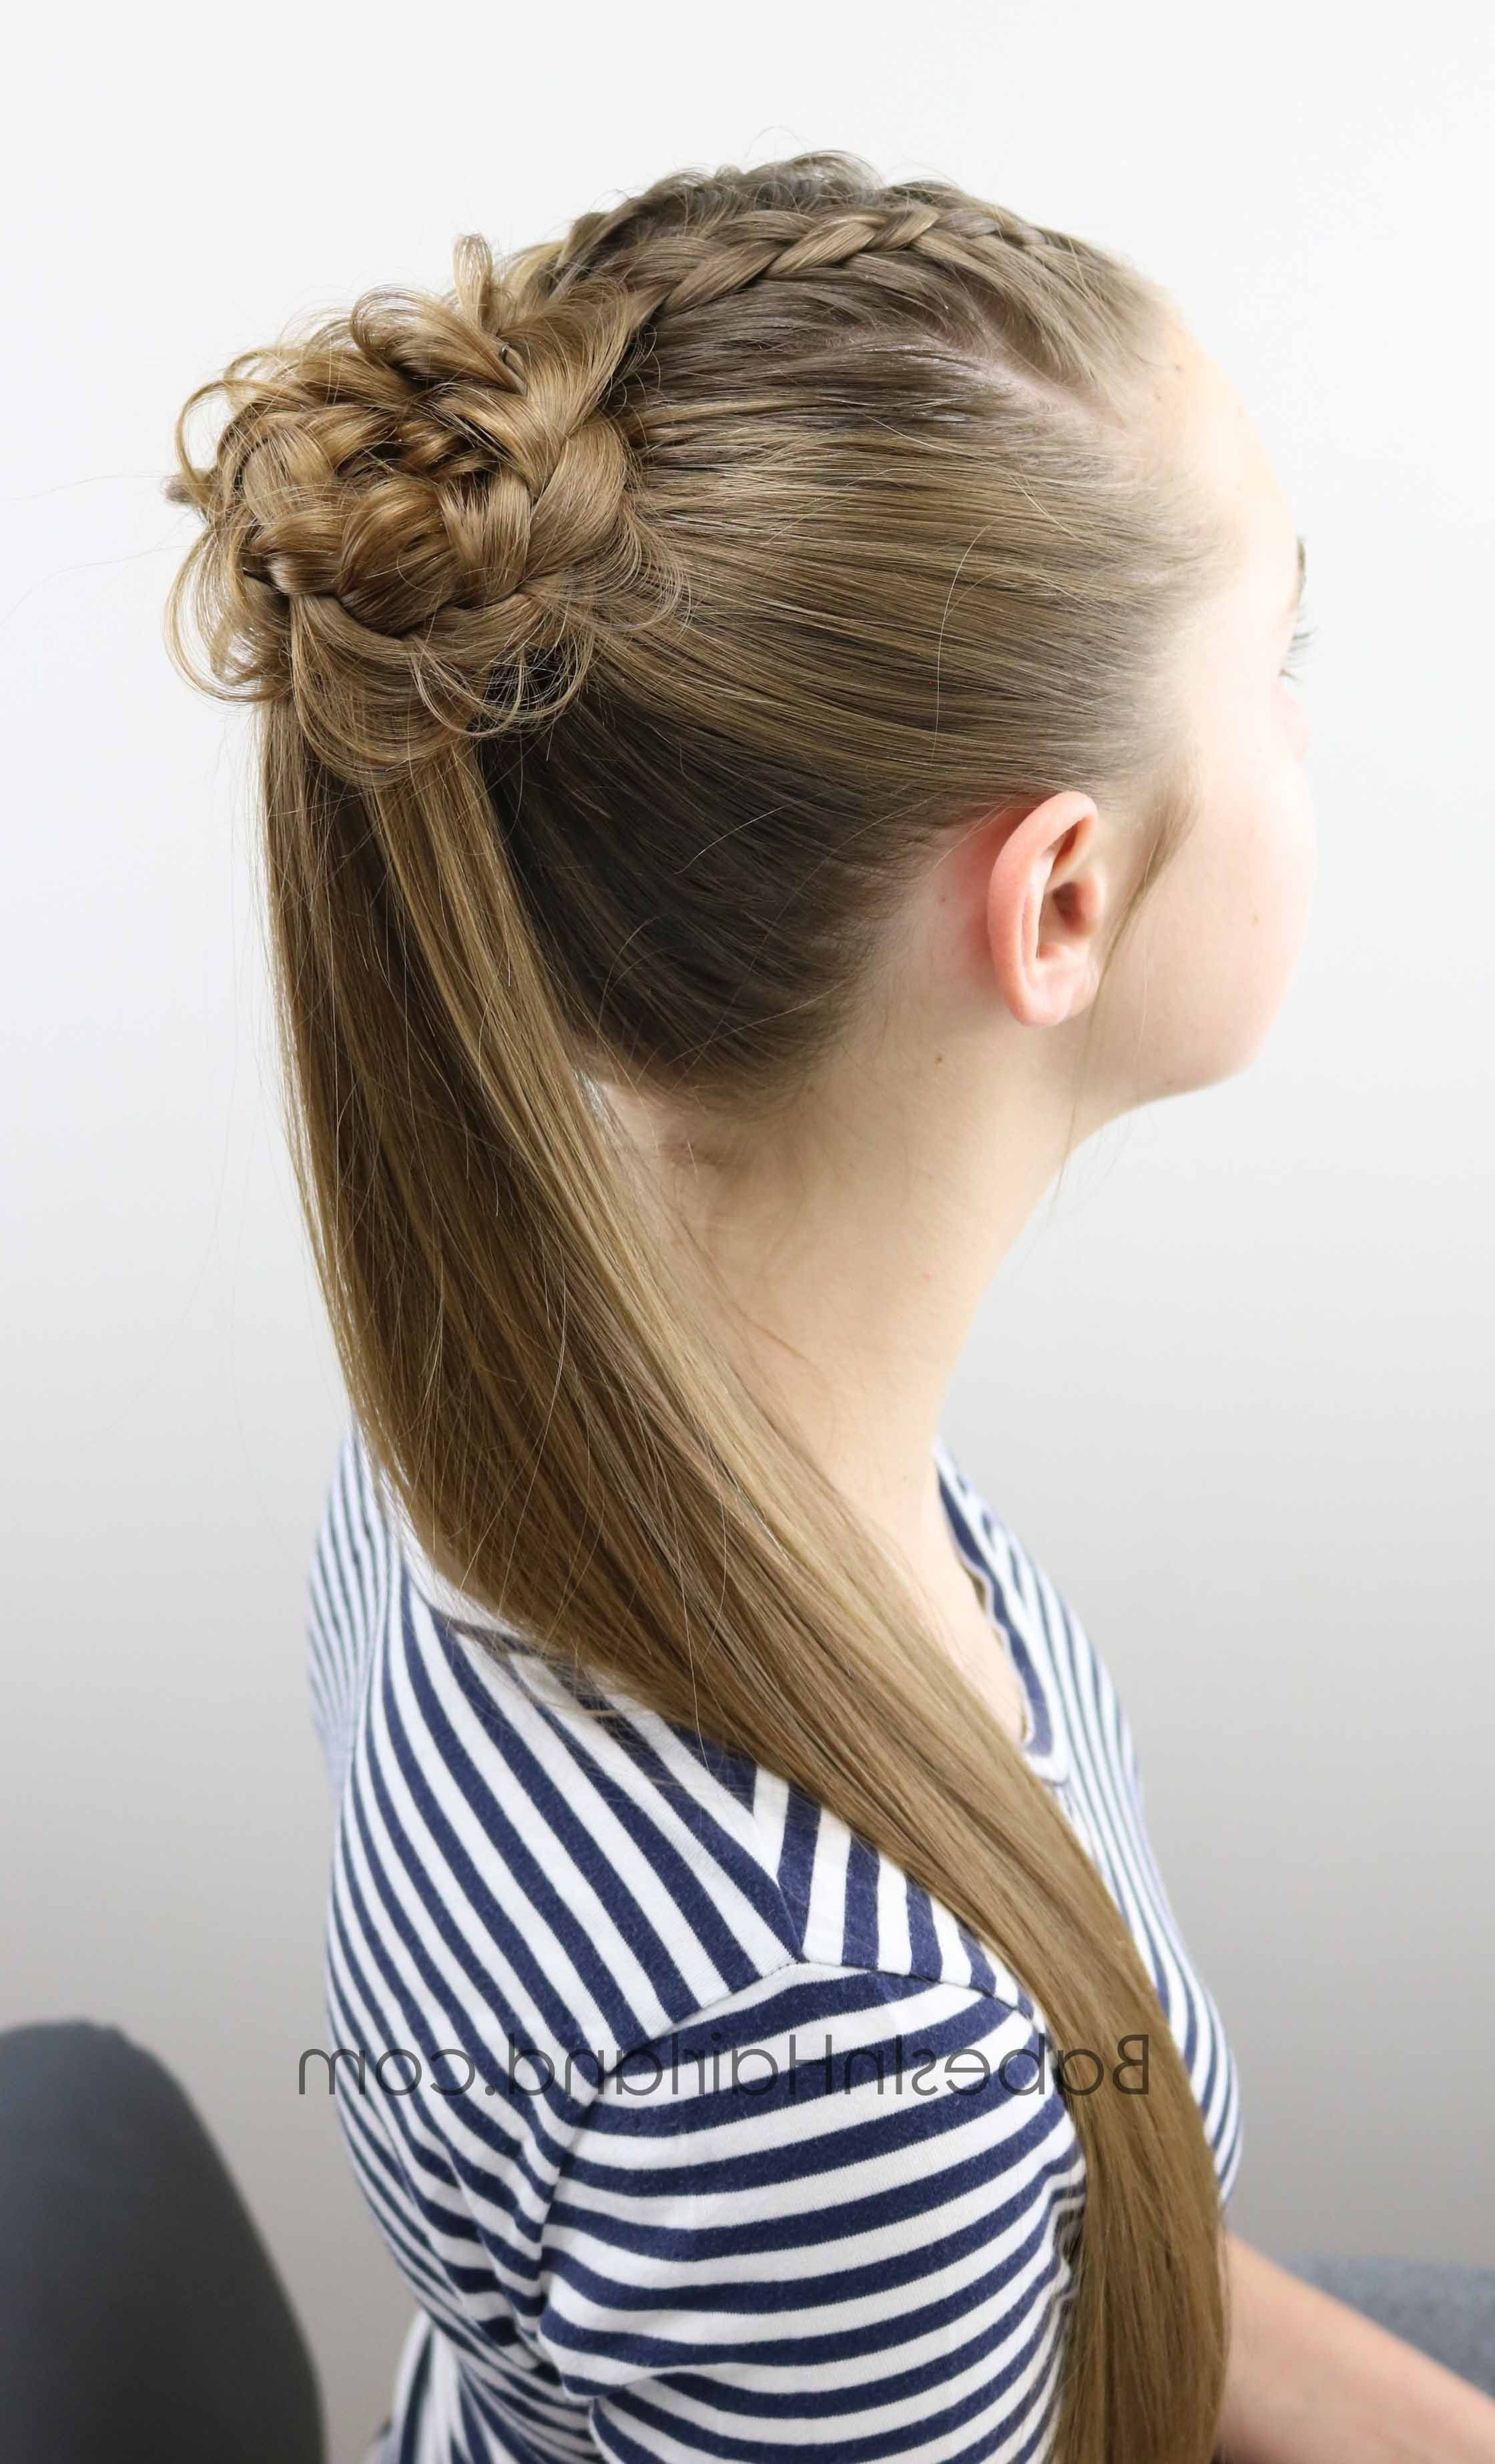 Hair – Of Instagram Within Widely Used Pony And Dutch Braid Combo Hairstyles (View 11 of 20)